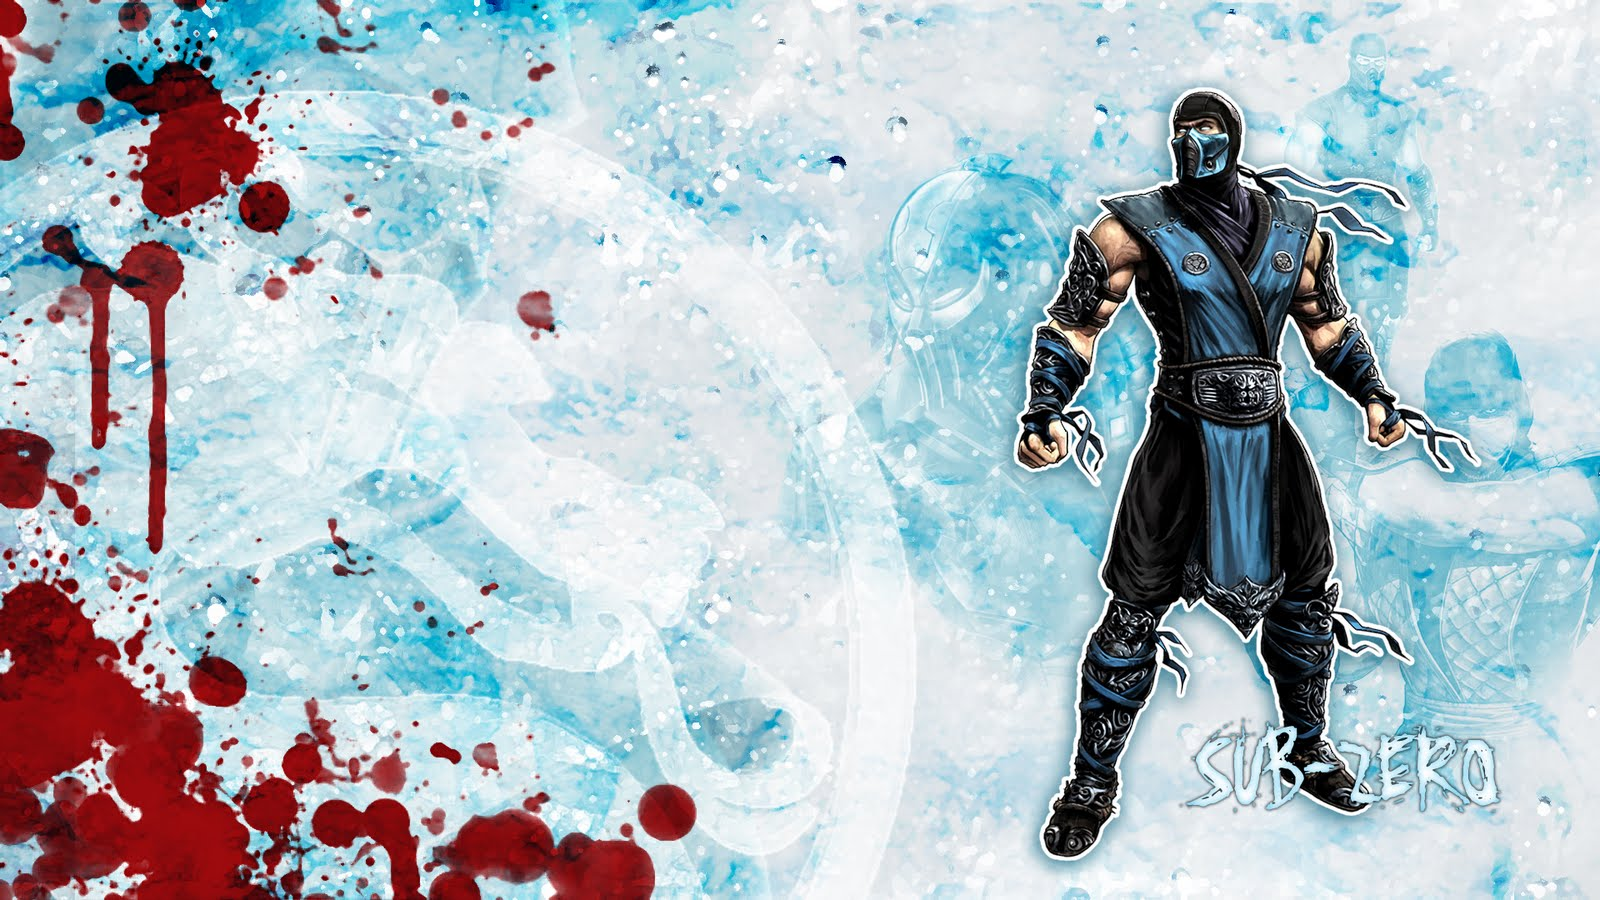 Mortal kombat HD & Widescreen Wallpaper 0.925405964438538